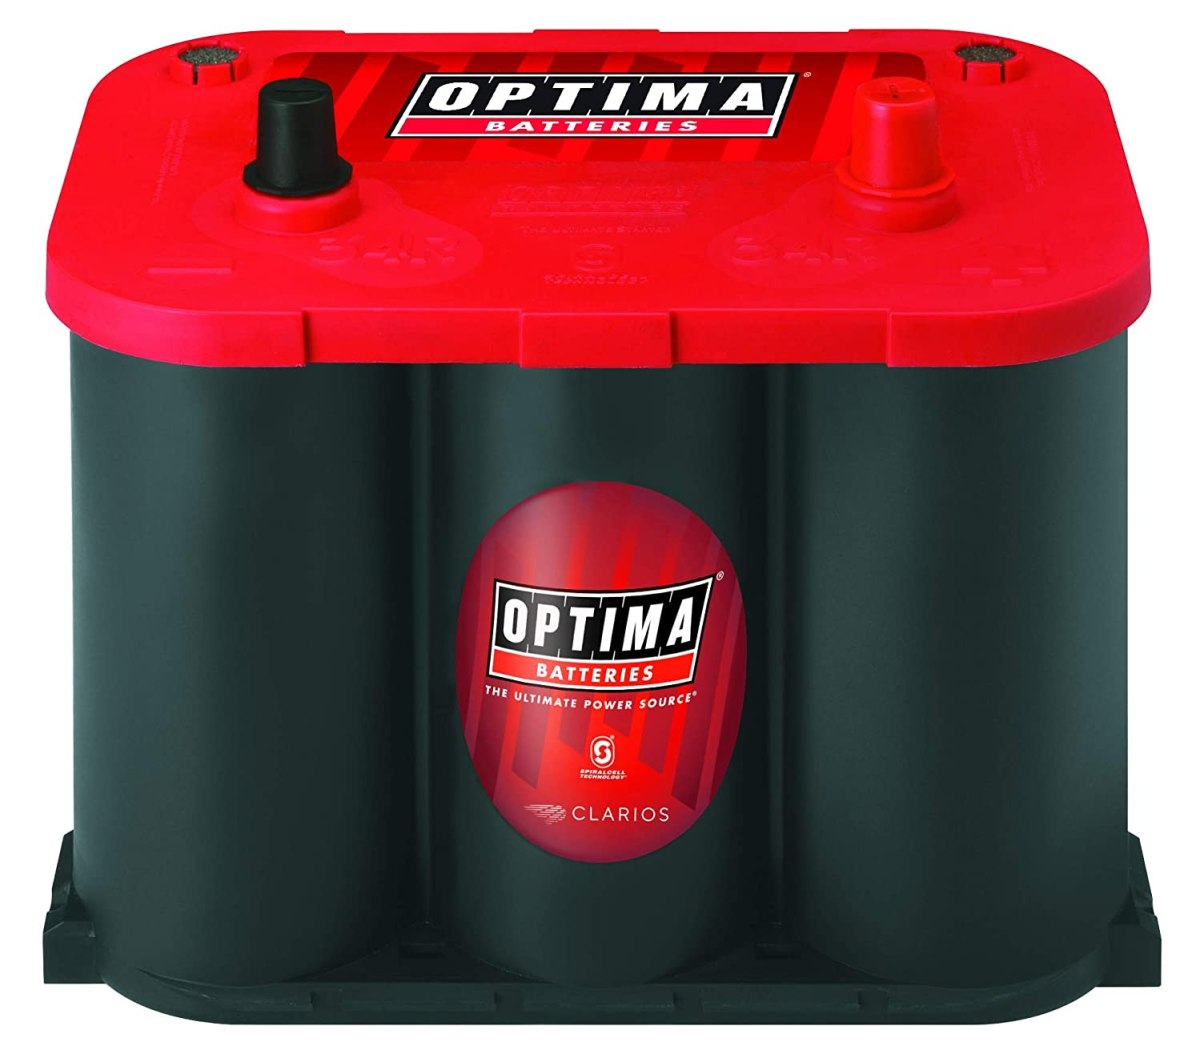 Best Car Batteries Optima Batteries 8003-151 34R RedTop Starting Battery